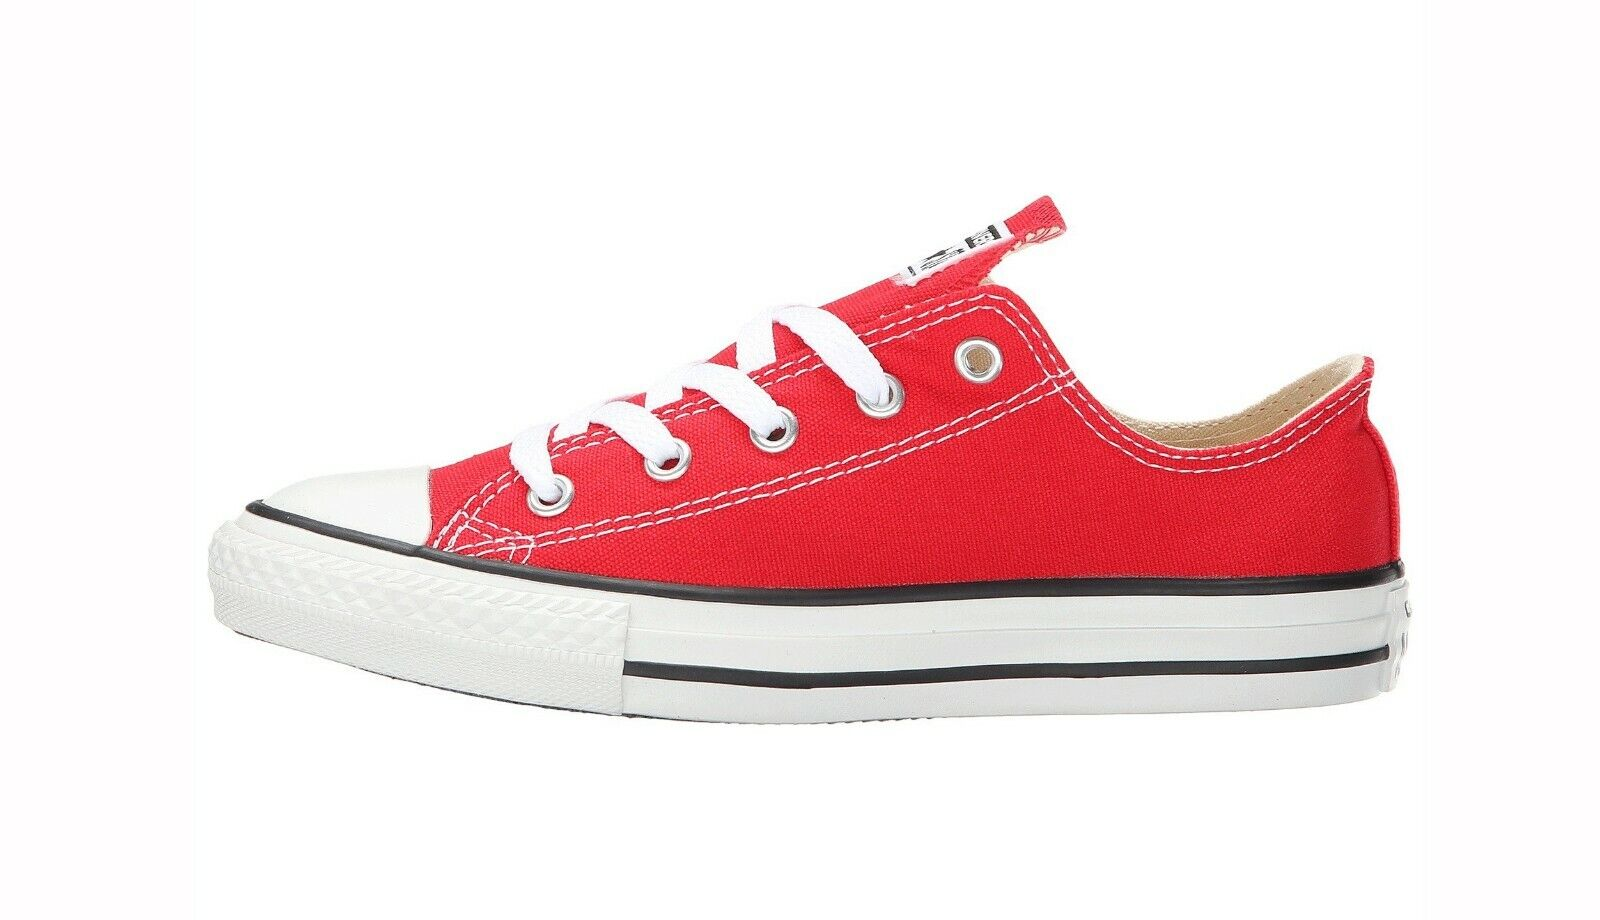 Star Low Top Red Shoes Youth Kids